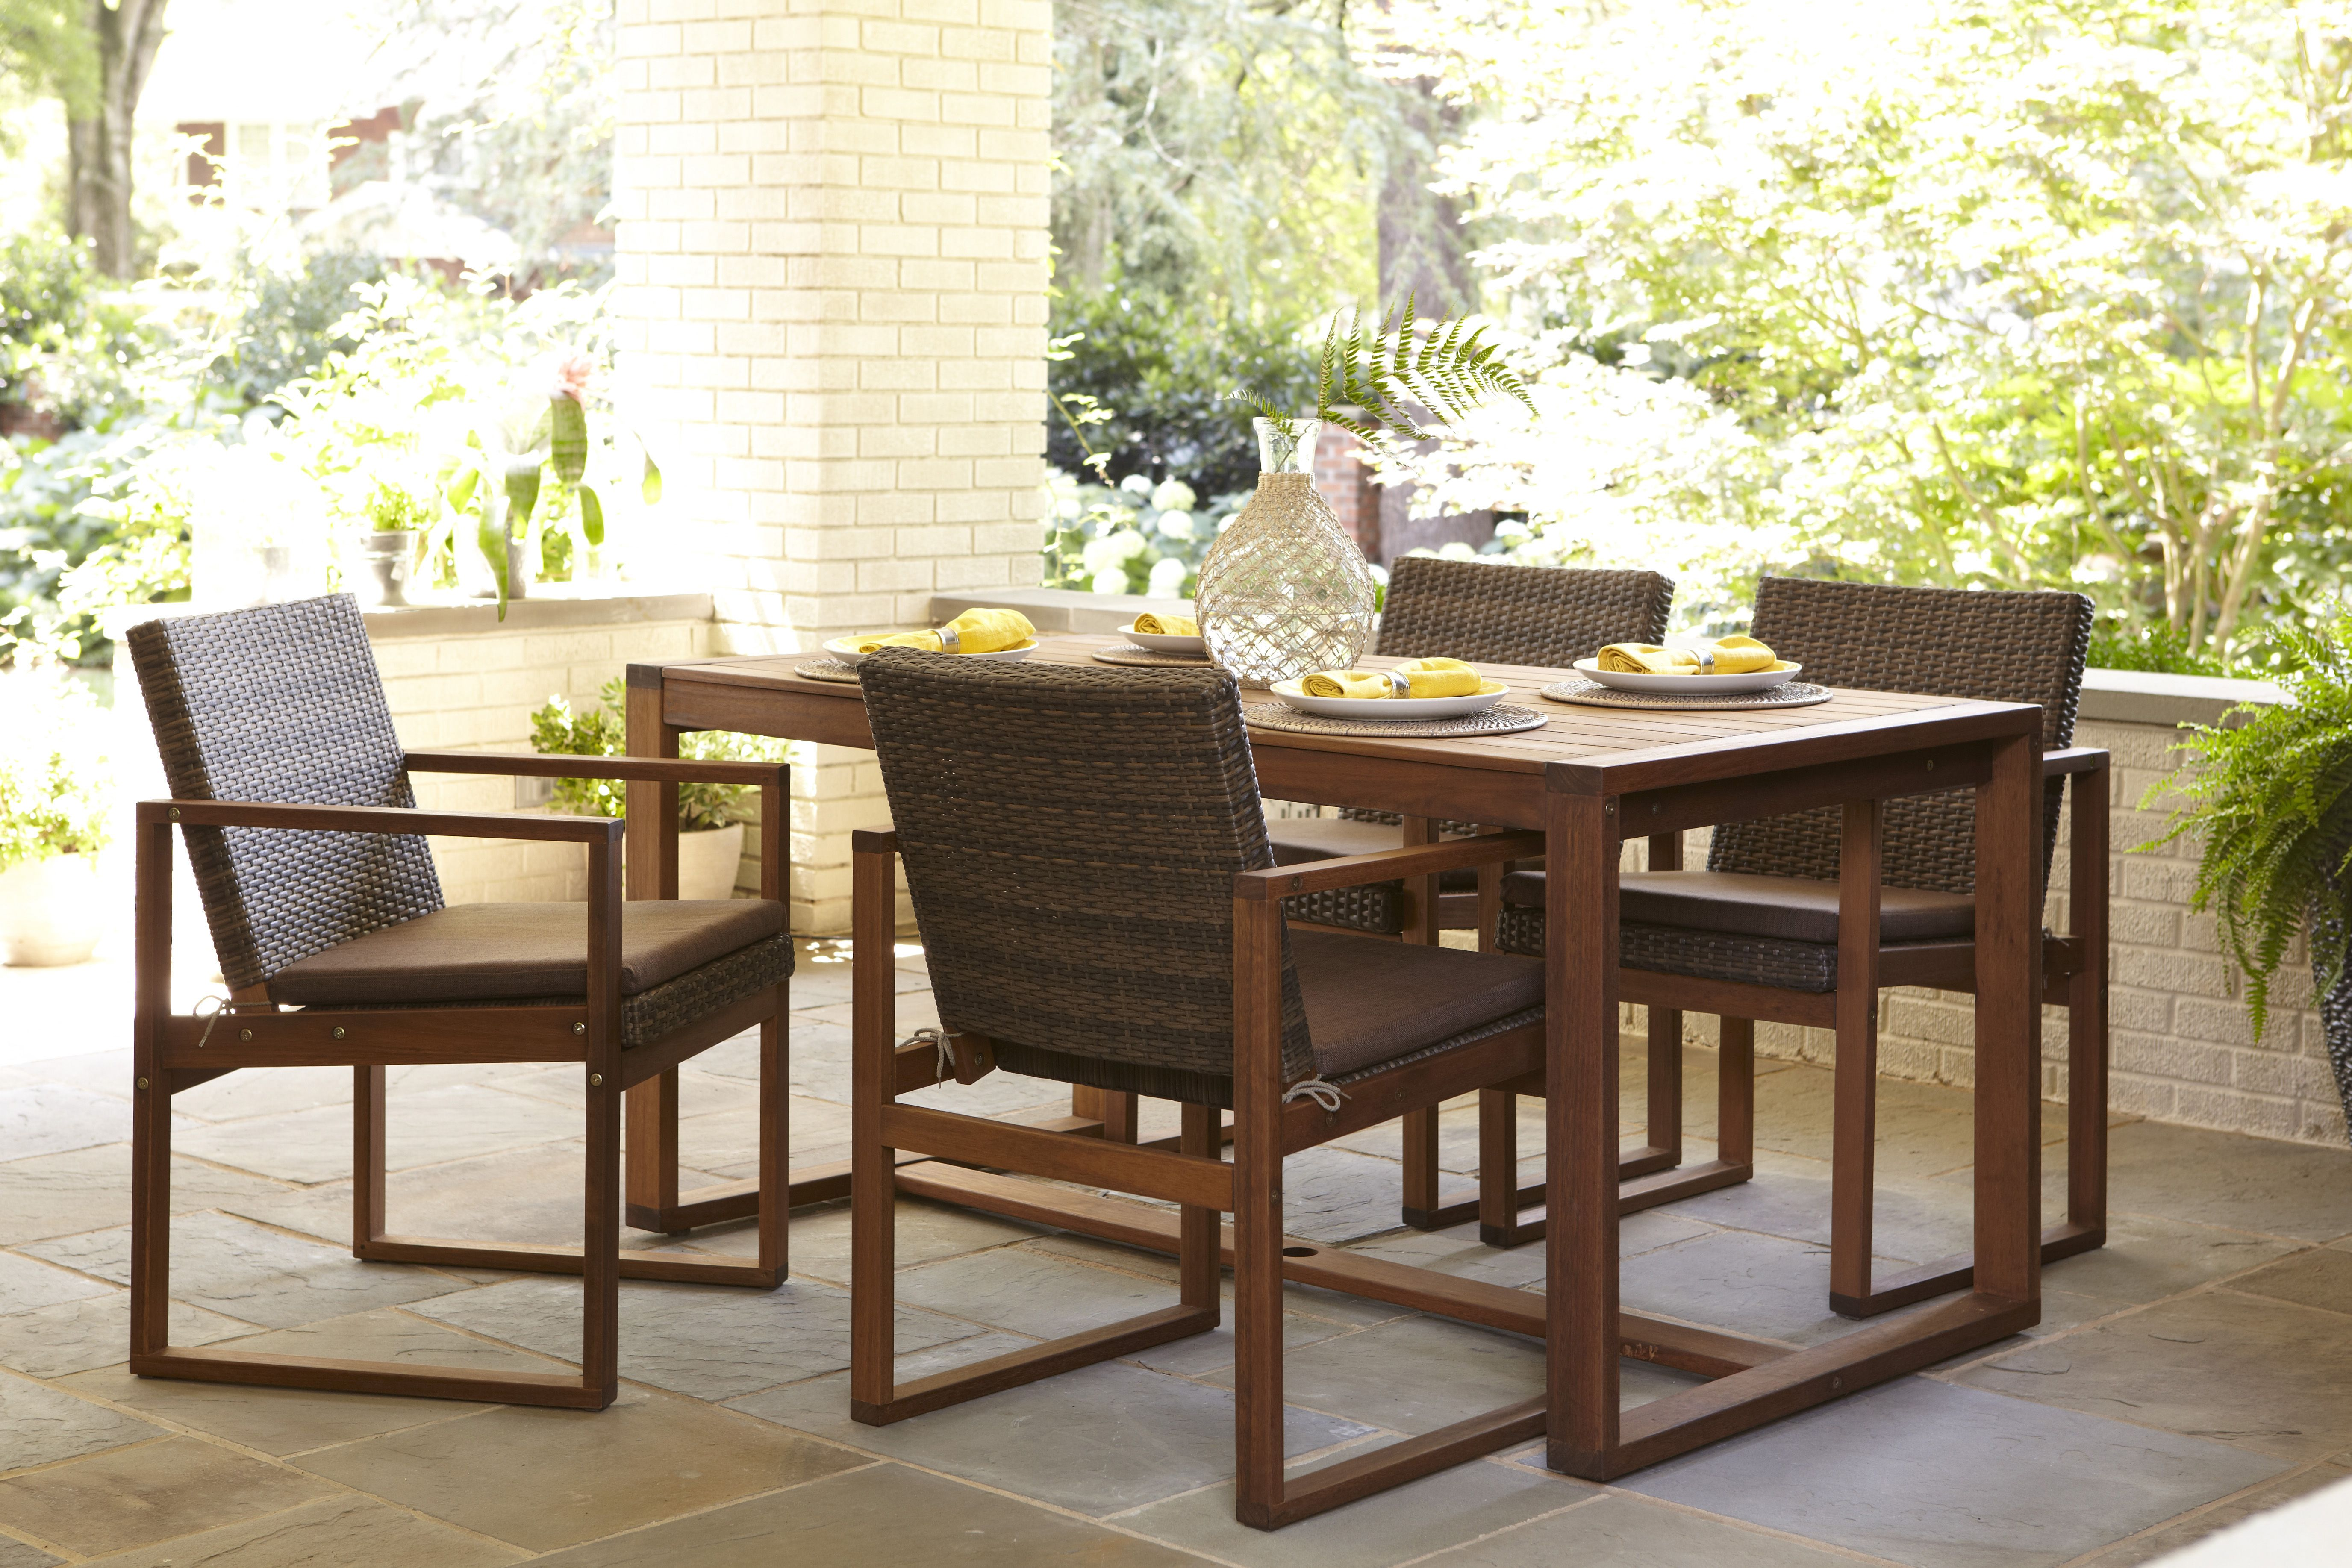 A Timeless Patio Dining Set Outdoor Furniture Sets Patio